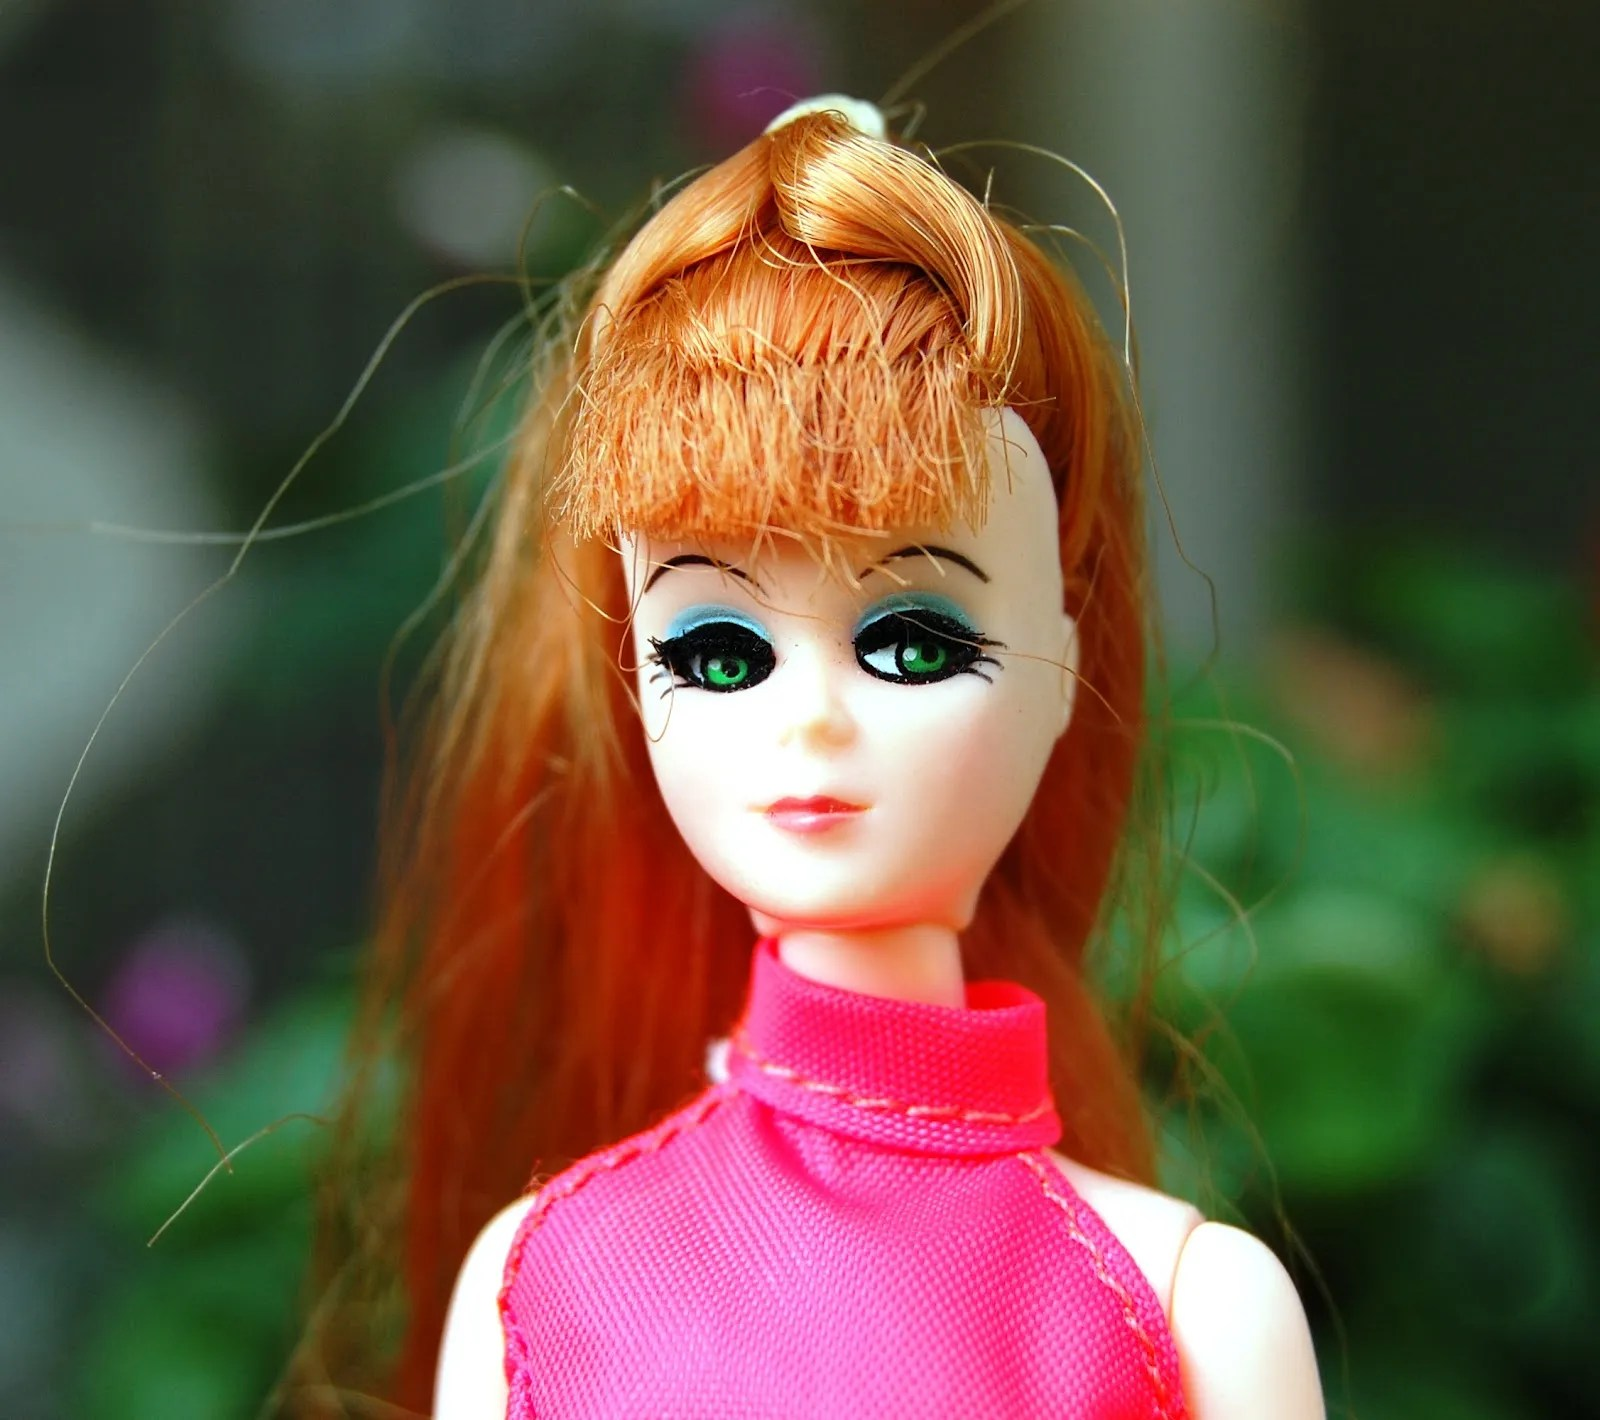 Glori the Topper Dawn Doll from the 1970s